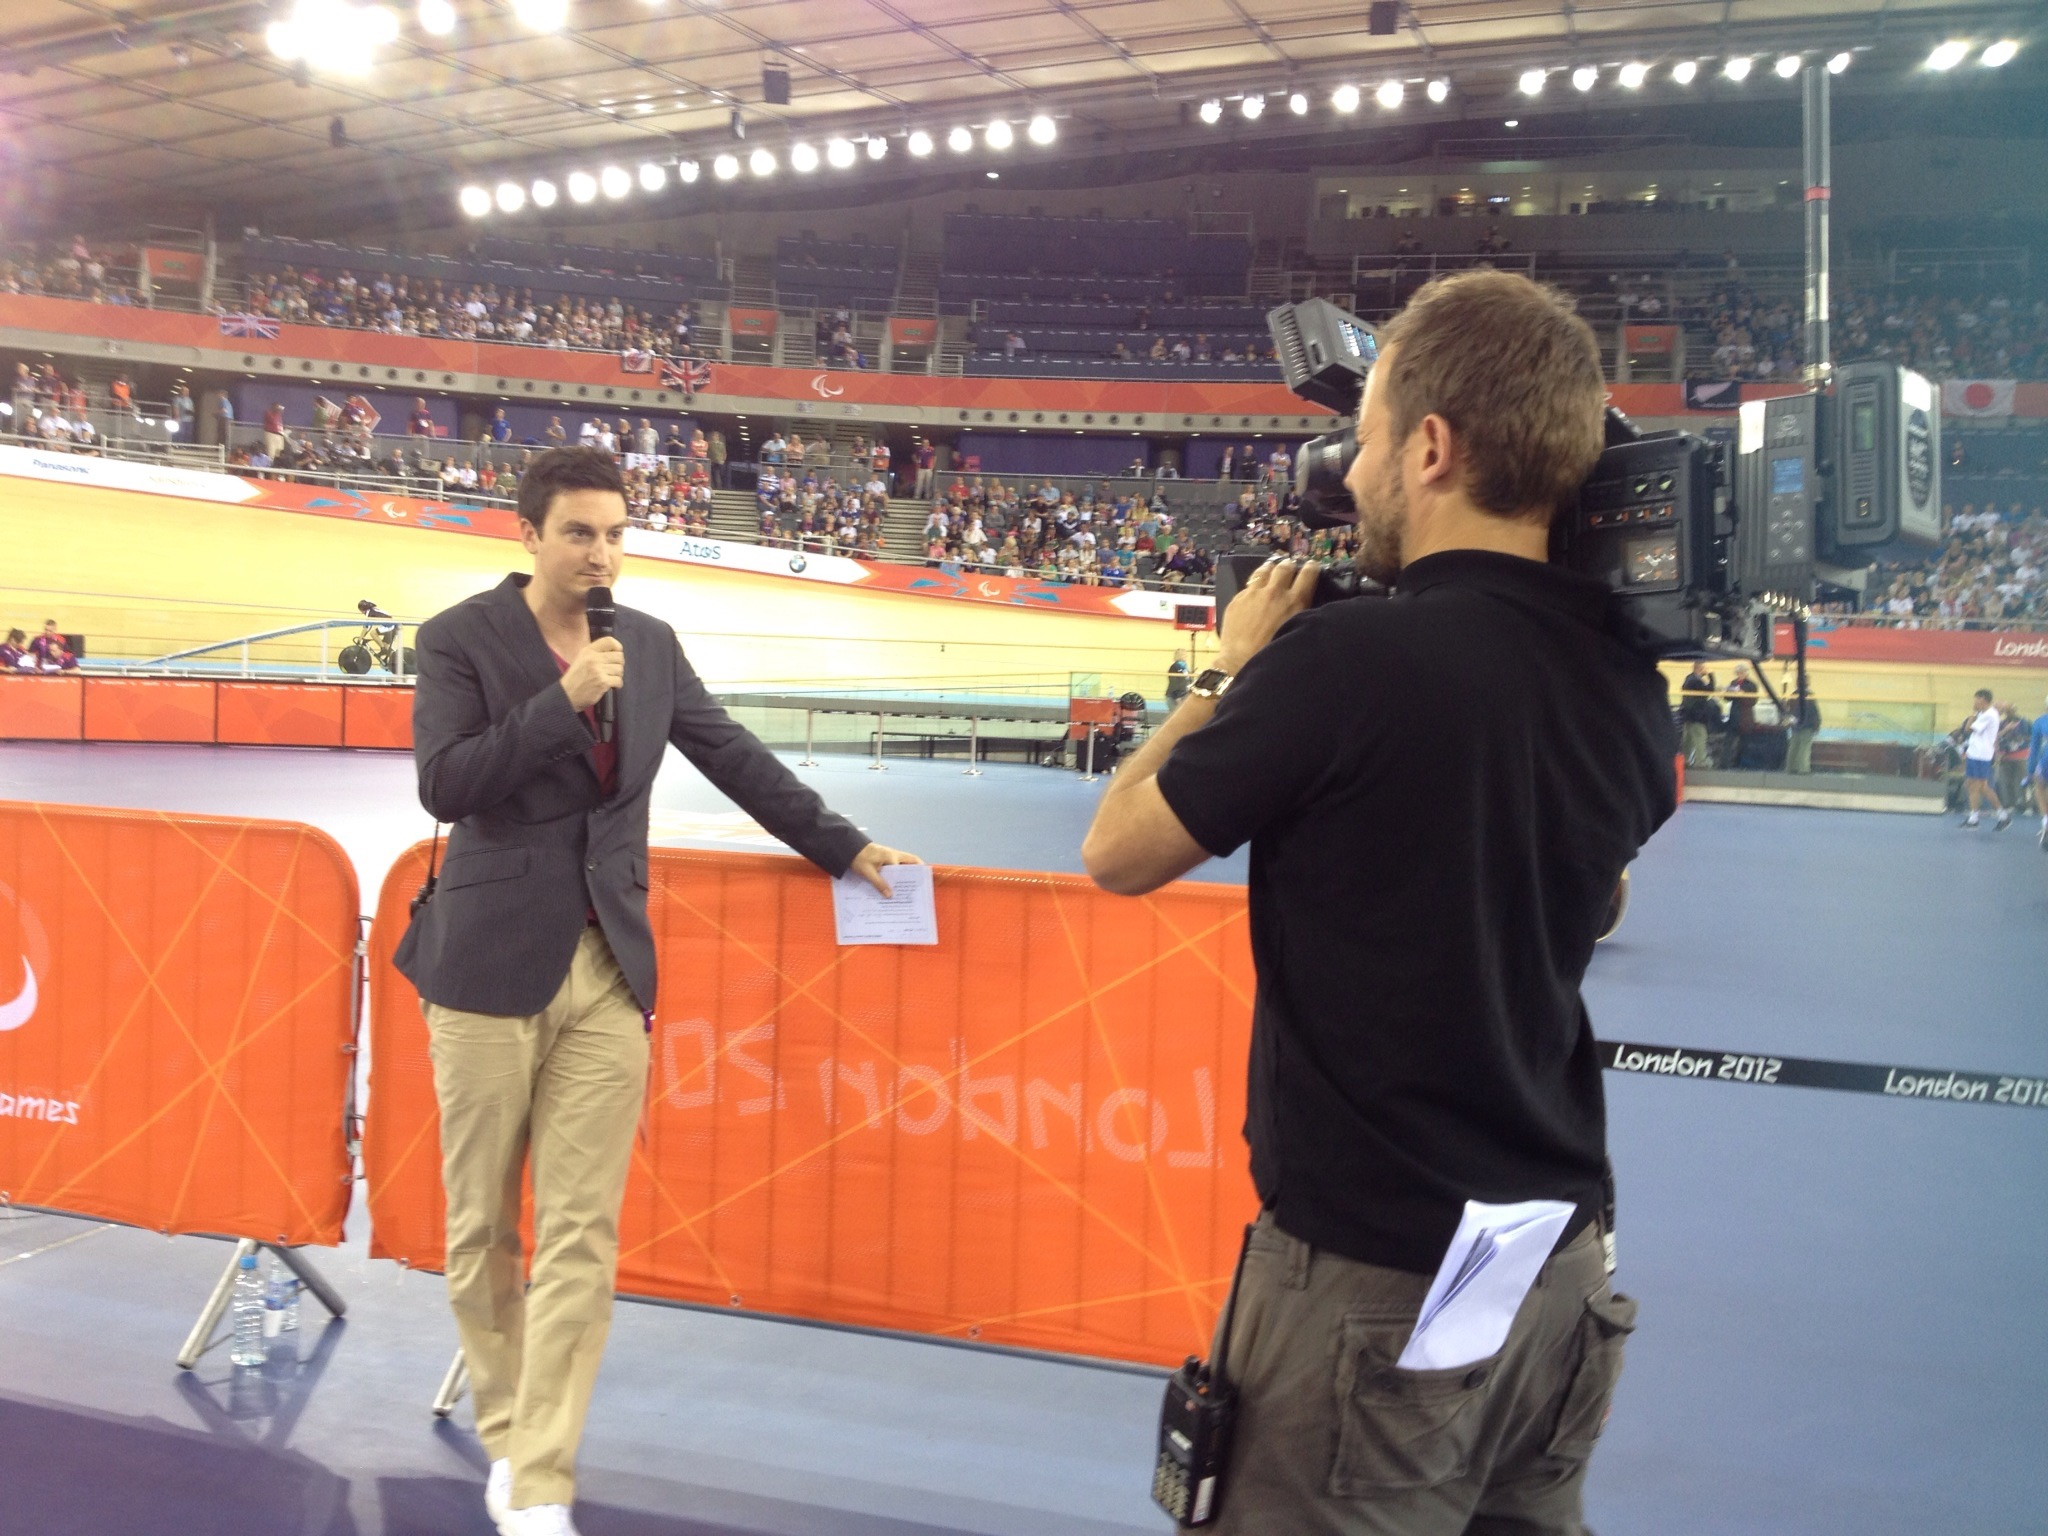 Presenting at the London 2012 Velodrome